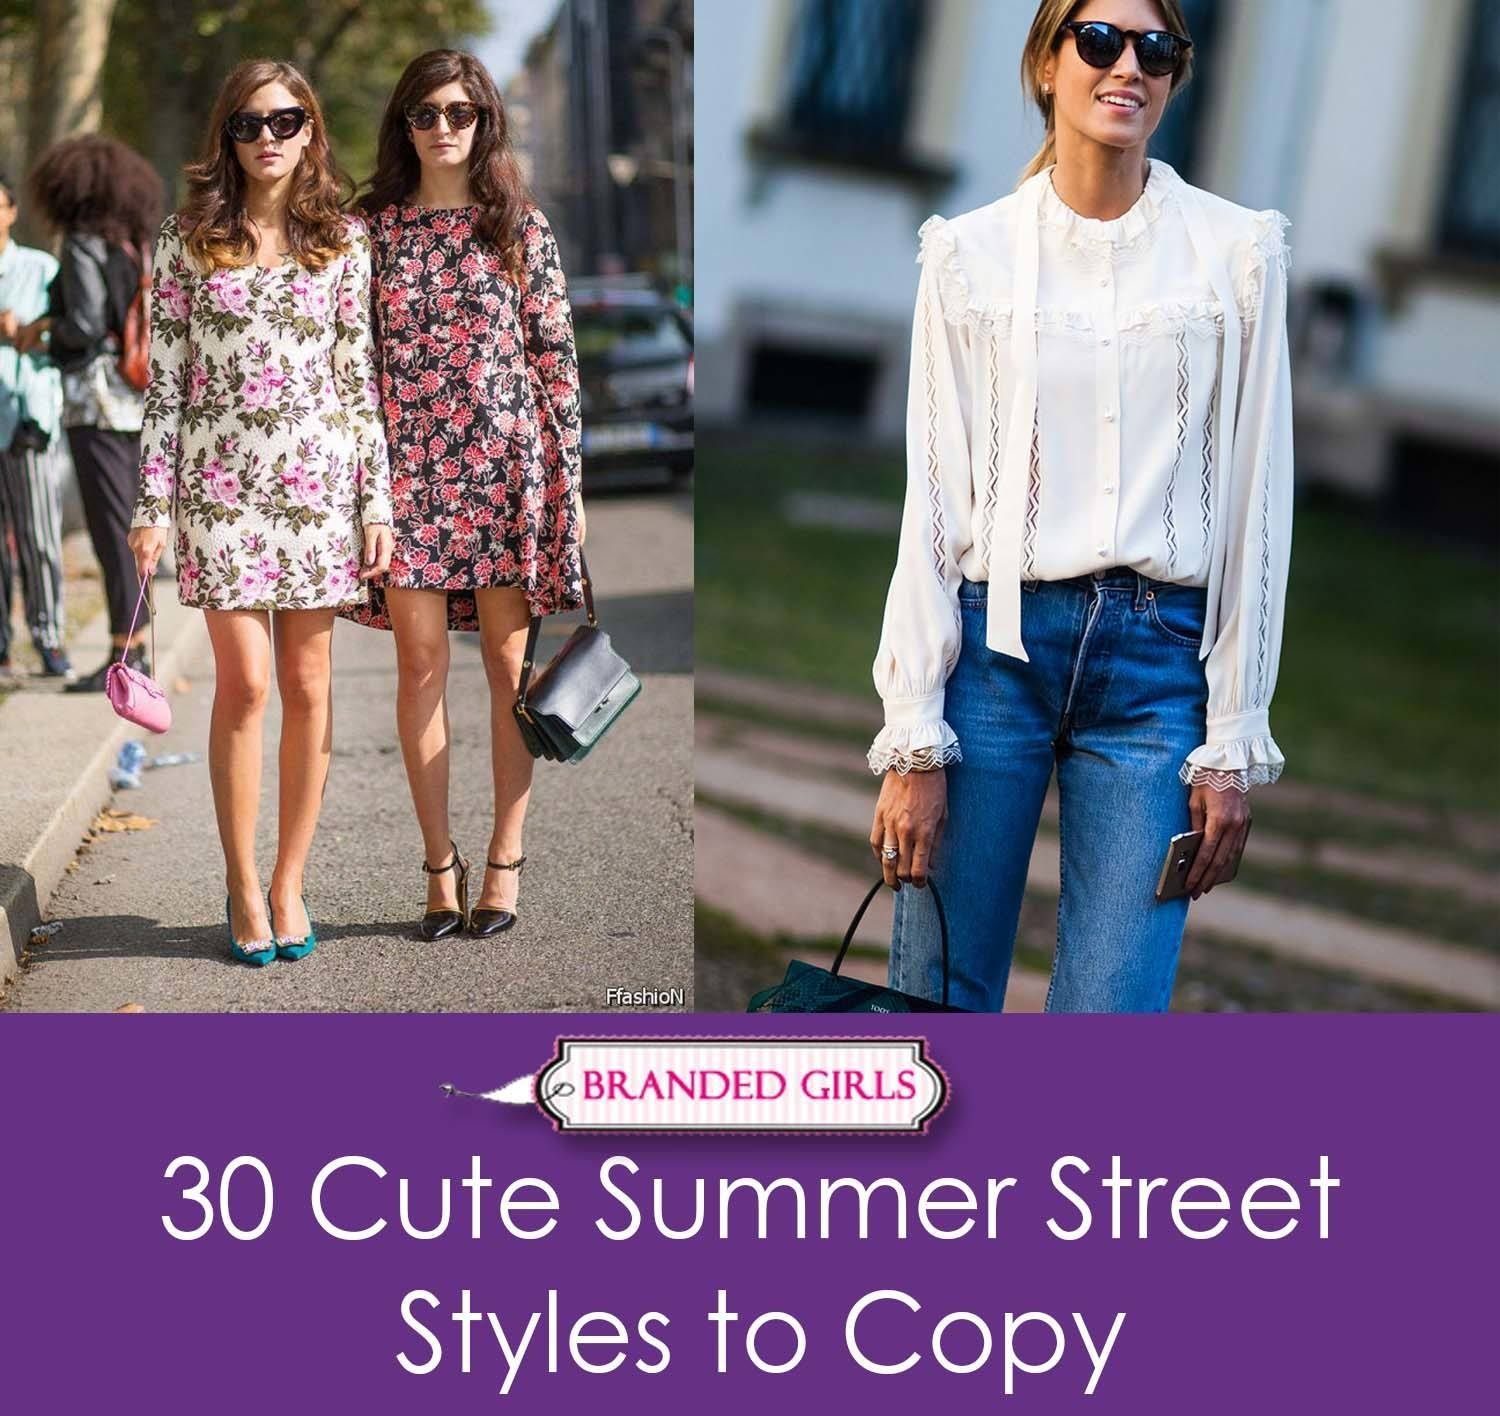 30 cute summer styles to copy